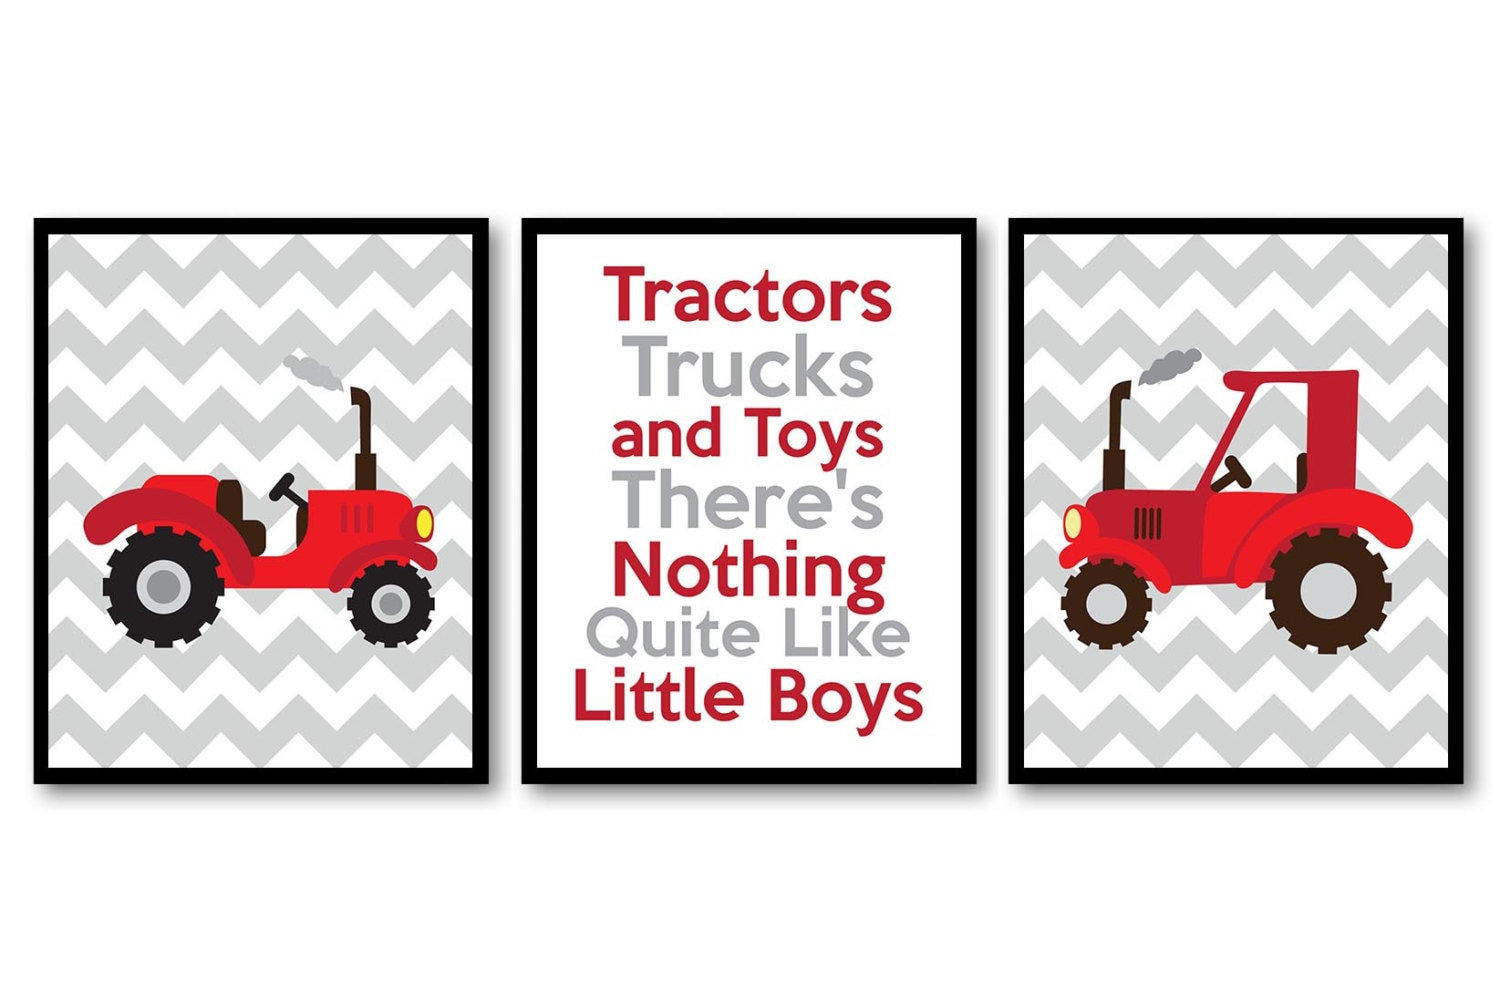 Tractor Nursery Art Tractors Trucks and Toys Theres Nothing Quite Like Little Boys Prints Set of 3 R